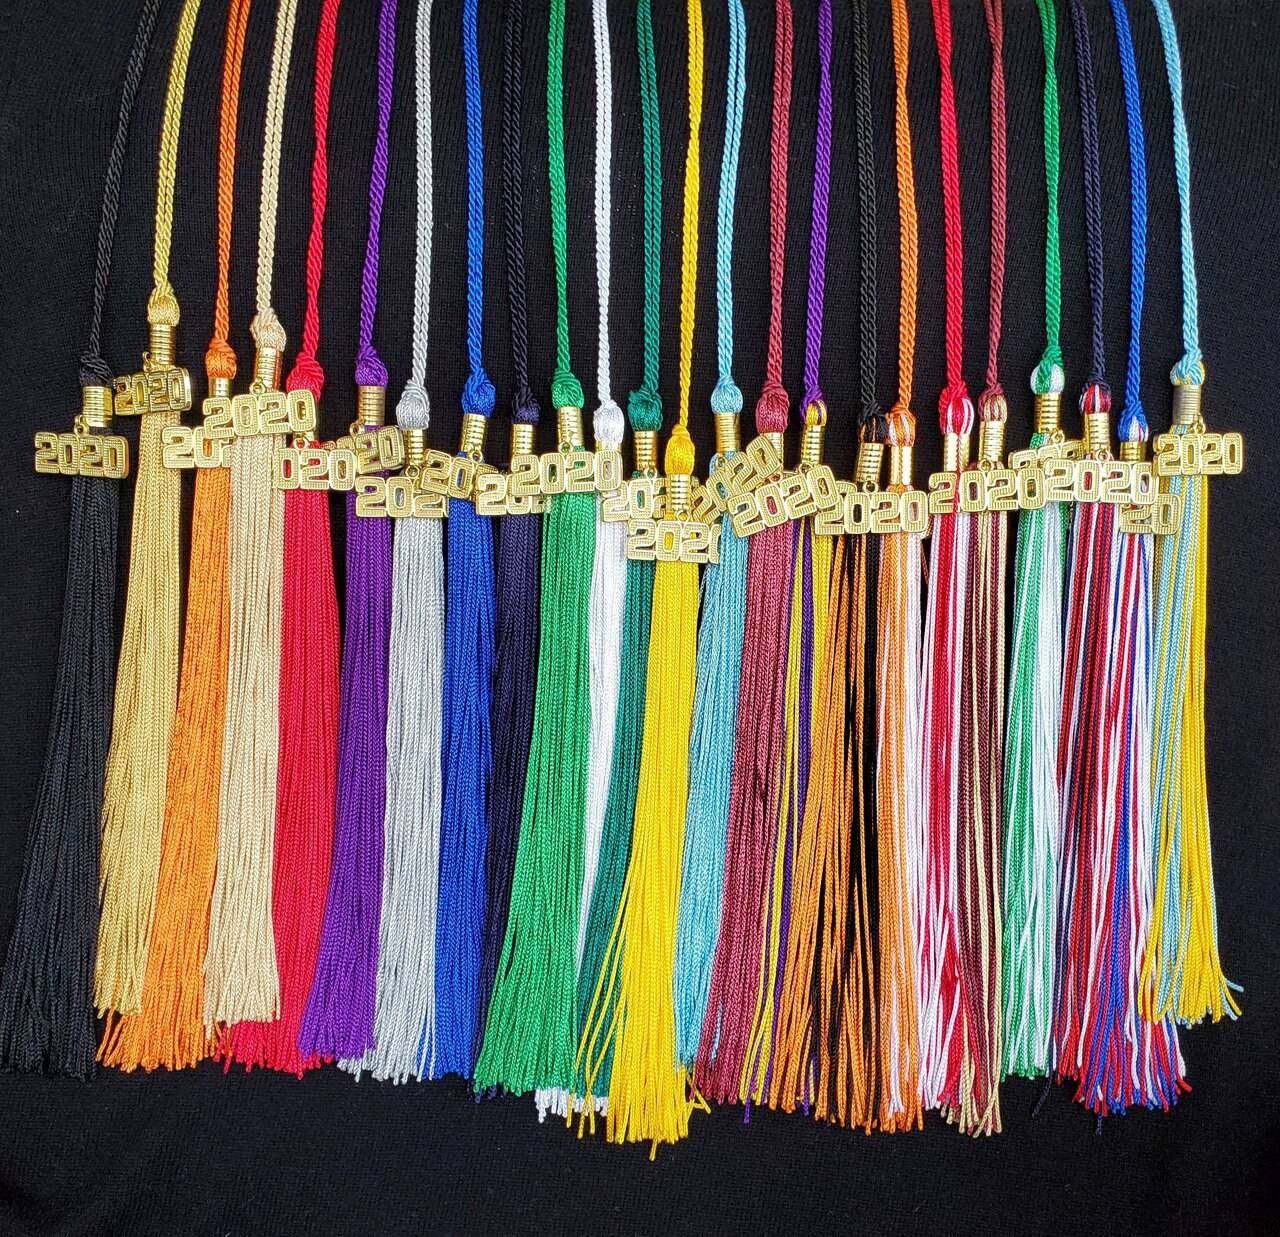 Graduation Tassel 16 long with 9.5 Tassel and 6.5 Loop Includes Gold Charm MADE IN USA Bulk Discounts